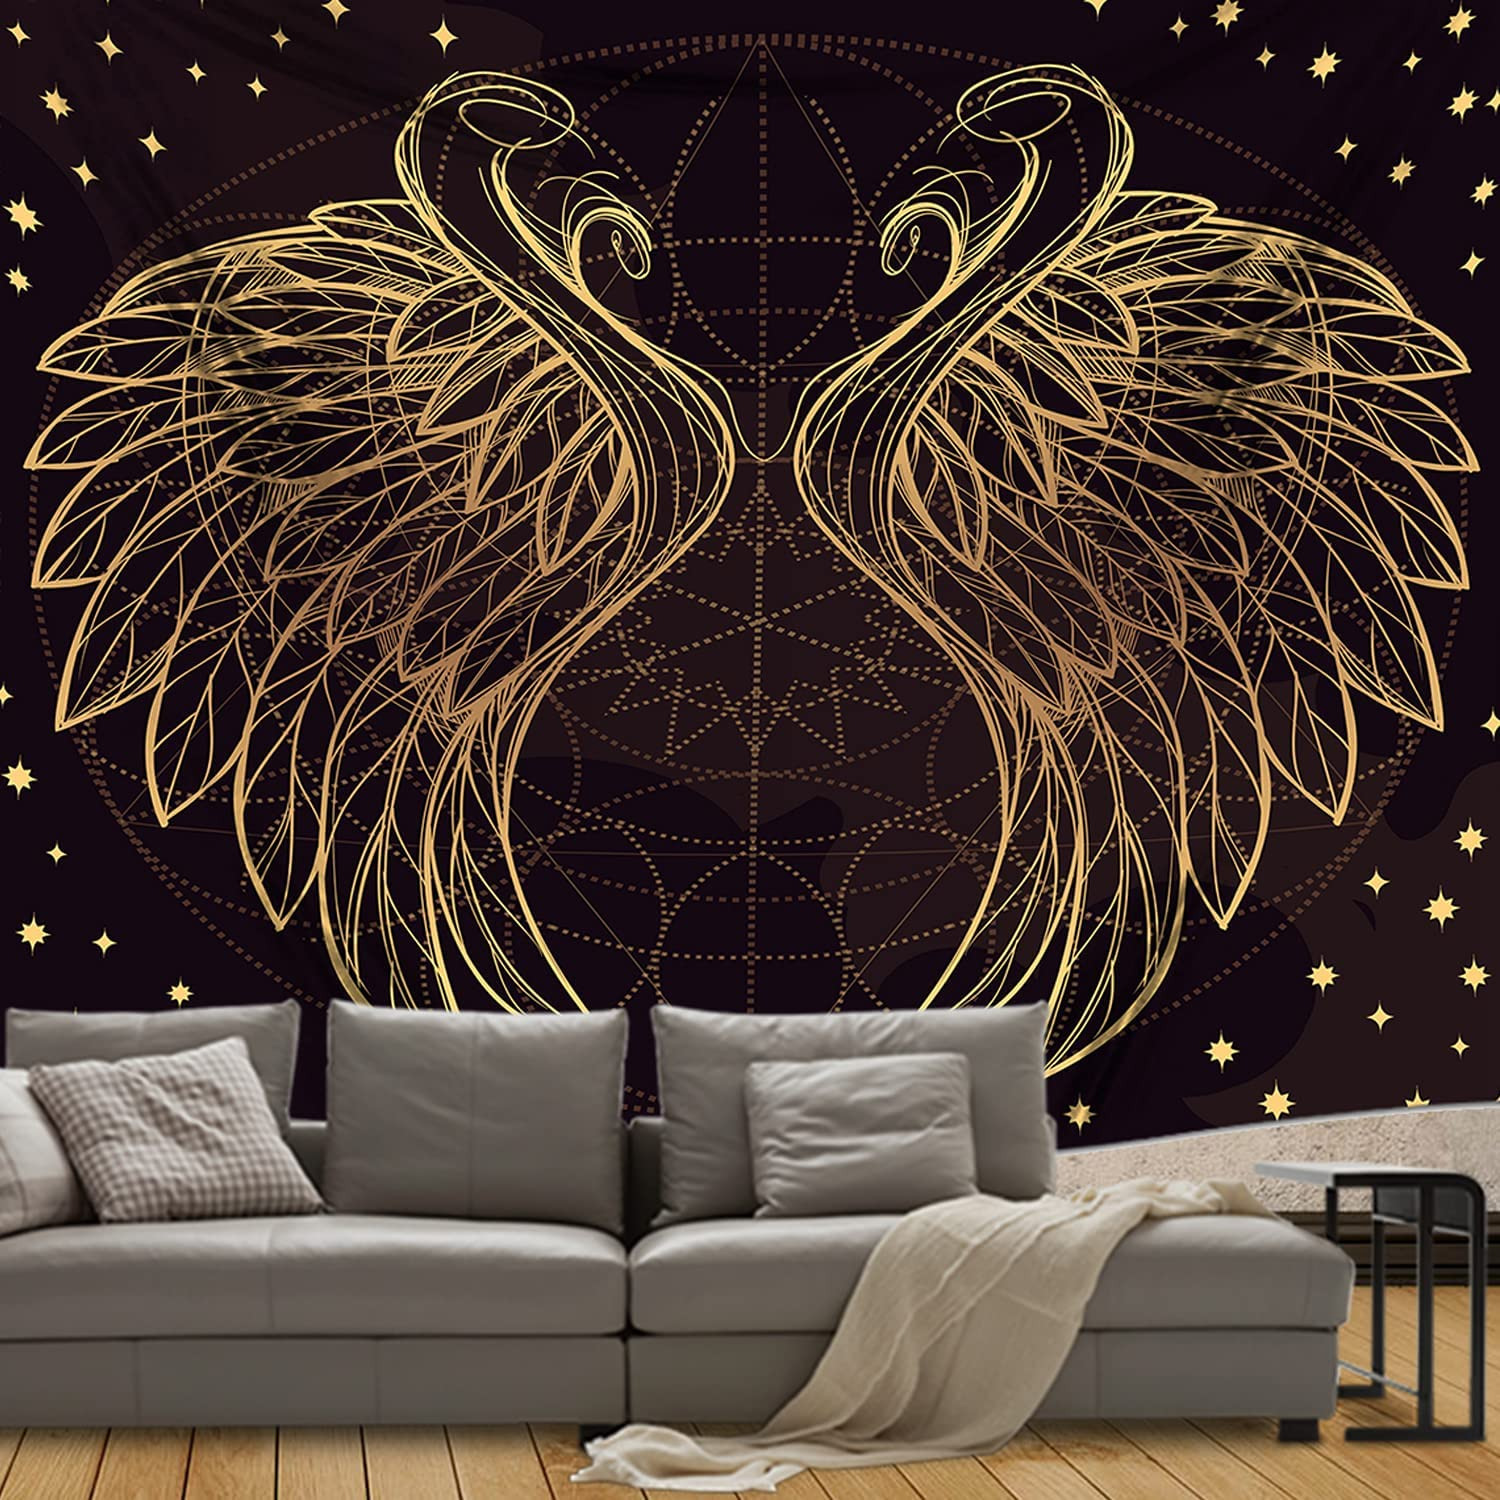 Tapestry Angel Wings Astrolabe Tapestry Starry Abstract Tapestries Black and Gold Mystic Tapestry Wall Hanging for Bedroom, Living Room, Dorm Home Wall Decor(51x59 Inches, 130x150 cm)